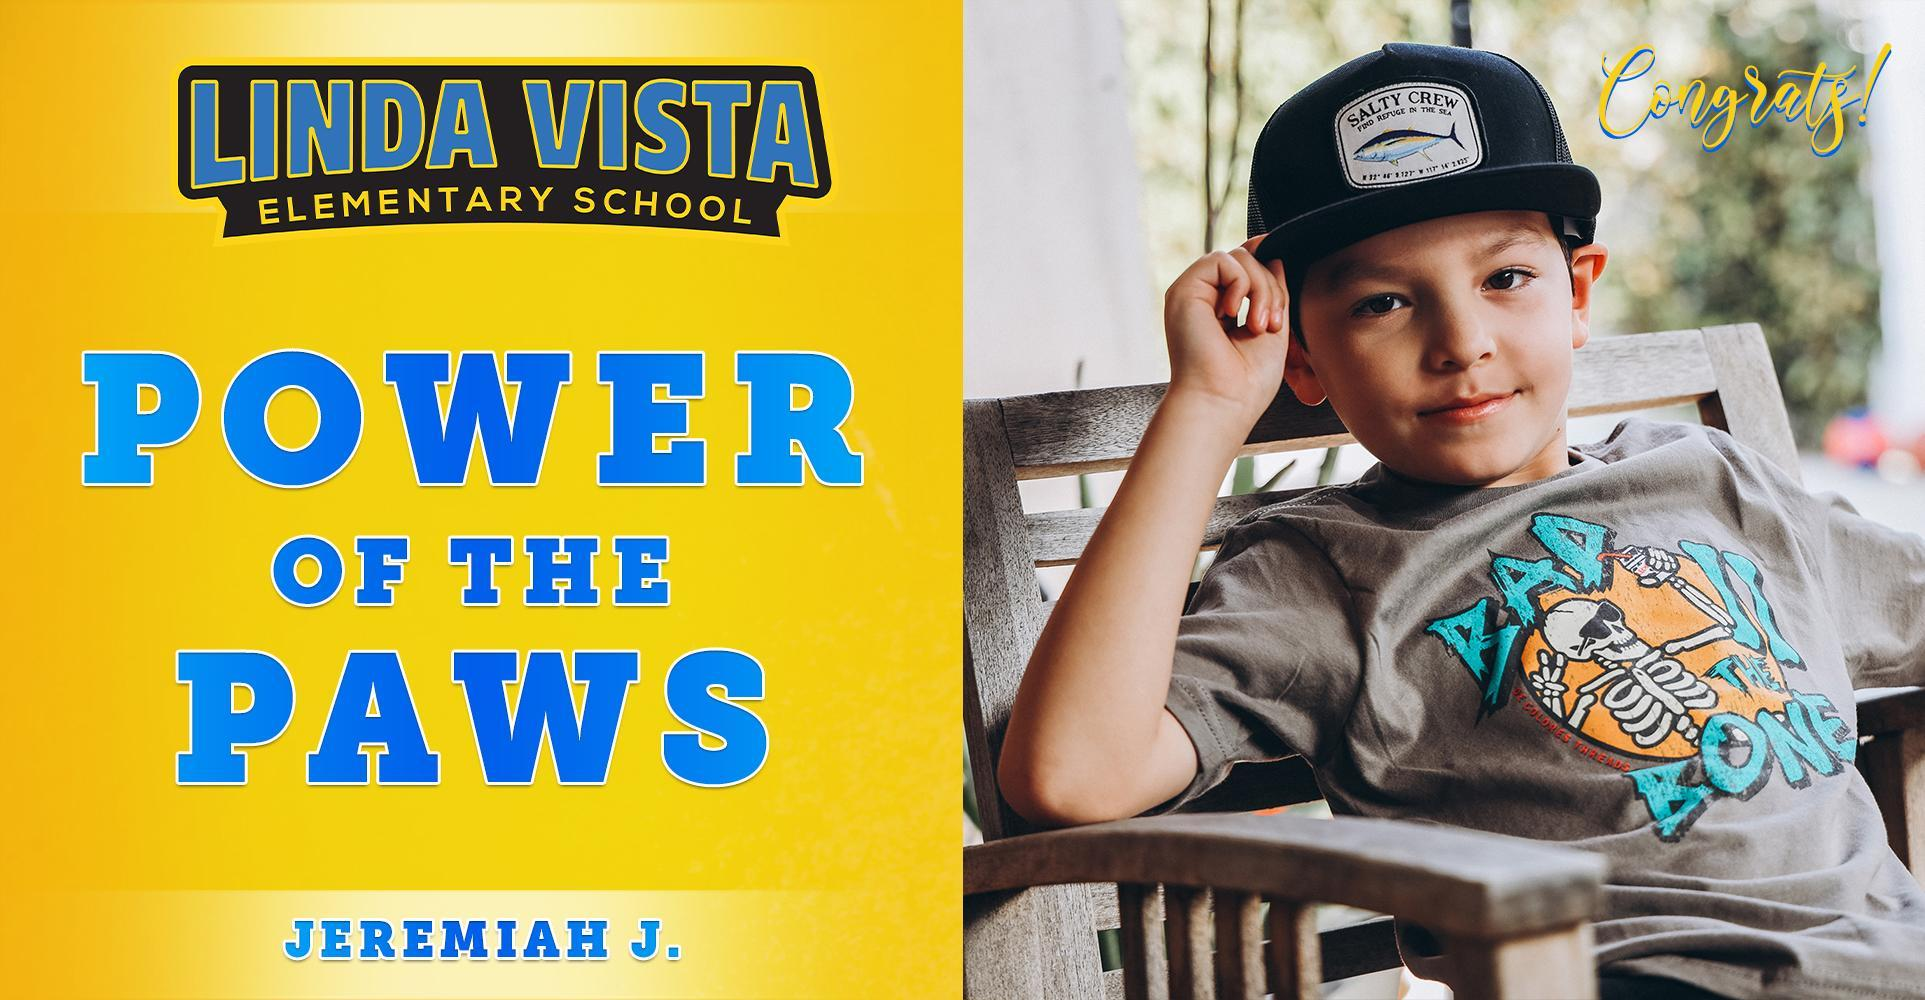 Congratulations to Our Power of the PAWS Student, Jeremiah J.!